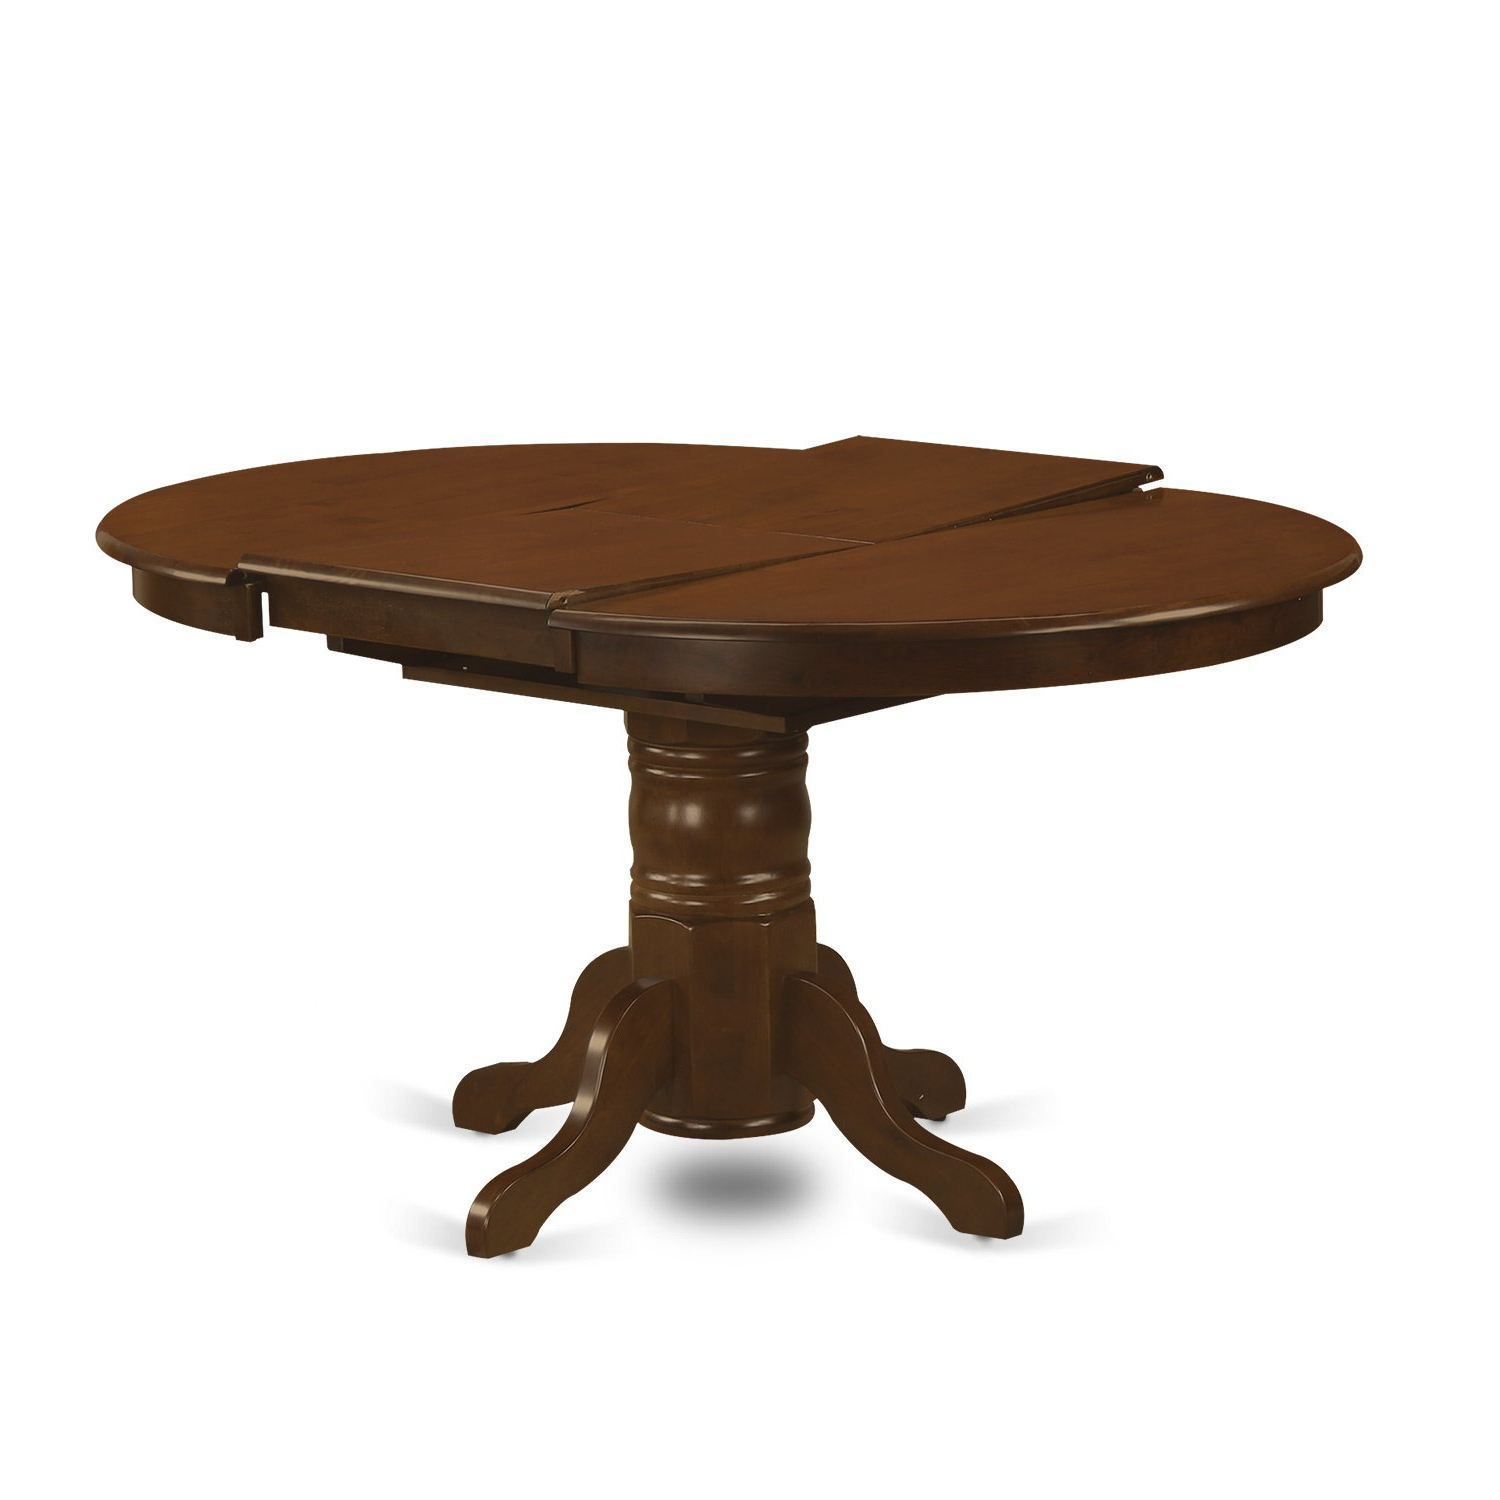 "East West Furniture Ket Esp Tp Kenley Oval Single Pedestal Dining Table With 18"" Butterfly Leaf, 42"" X 60"" Within Famous West Hill Family Table 3 Piece Dining Sets (Gallery 13 of 20)"